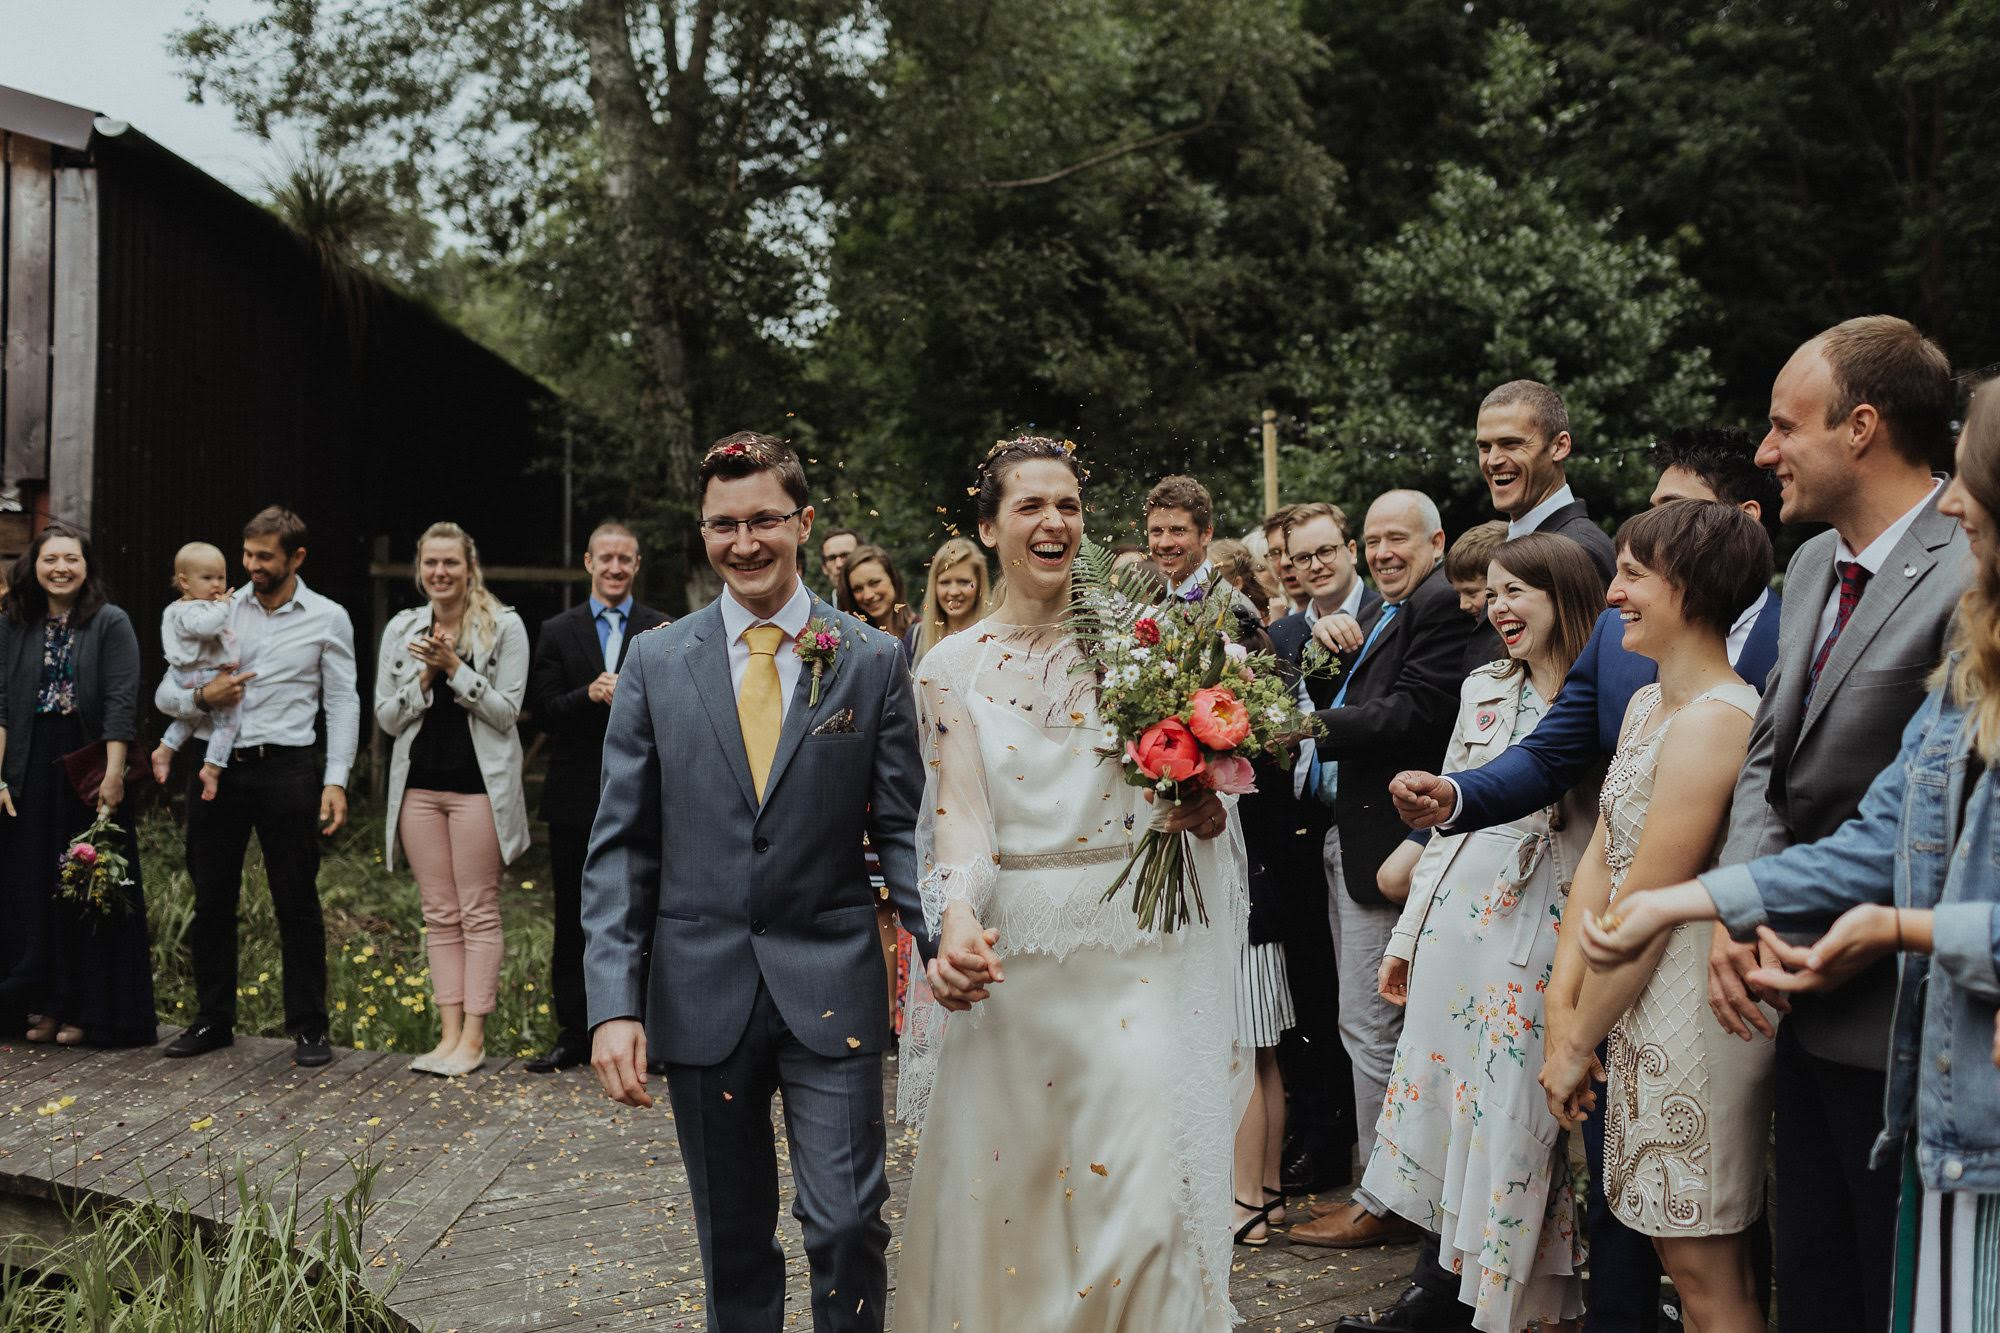 Rowanne-Laid-back-Woodland-Wedding-Sheffield-Clematis-Lace-Silk-Bohemian-Wedding-Gown-Kate-Beaumont-16.jpg